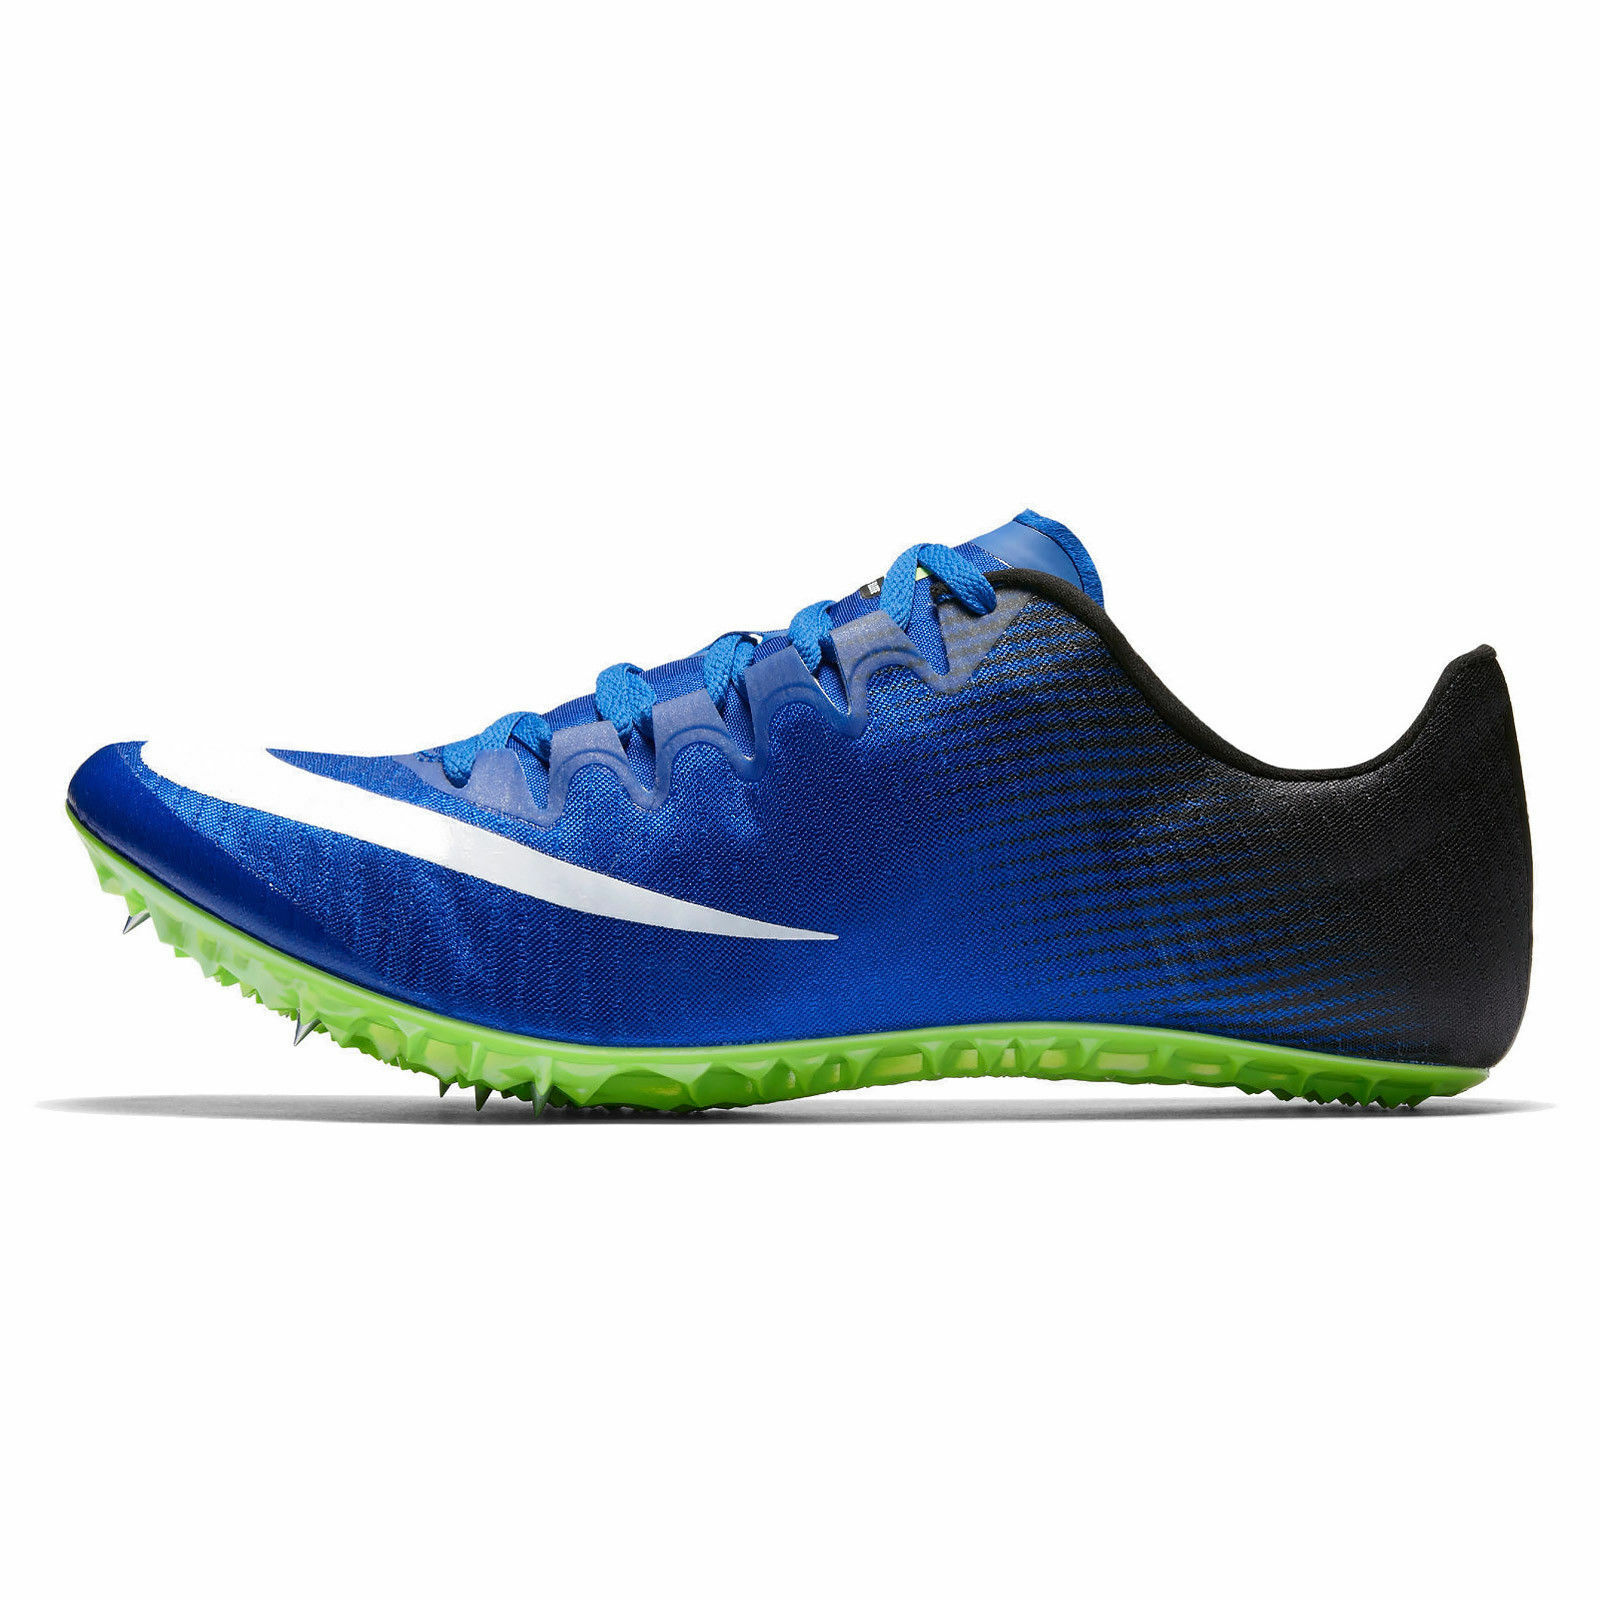 New Mens Nike Zoom Superfly Elite Spikes Running Shoes 13 Blue White 835996-413